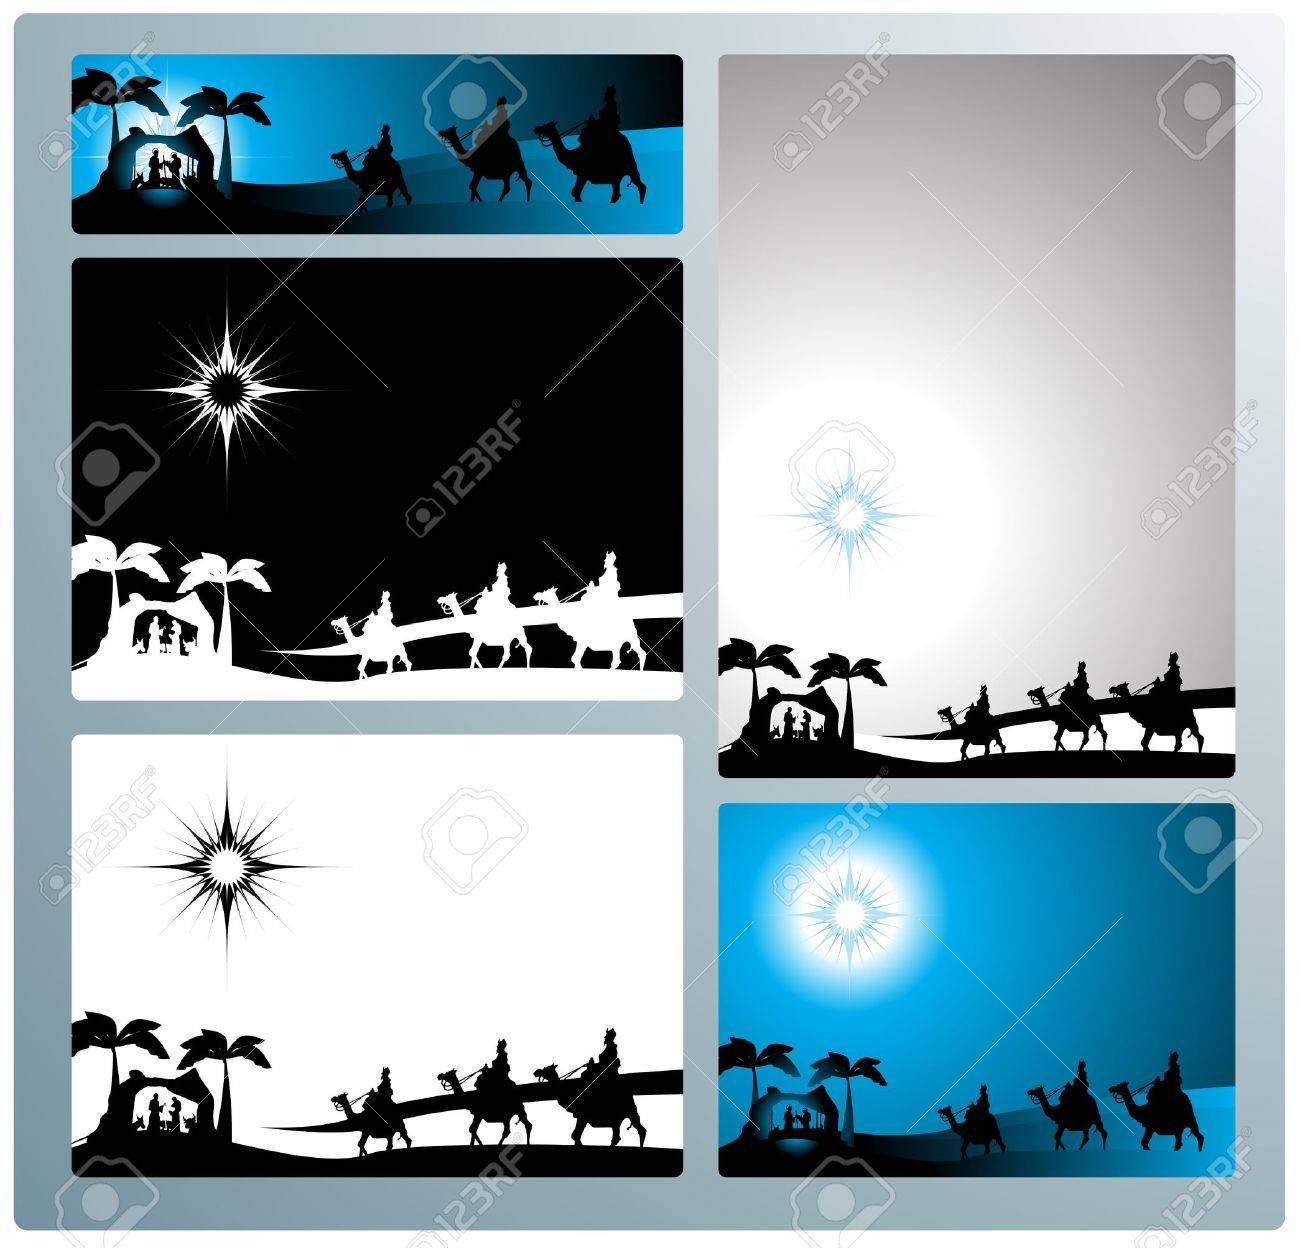 Illustration in different formats, horizontal banner format and horizontal l and vertical letter format. They represent the nativity scene with the three wise men. Stock Vector - 10626719